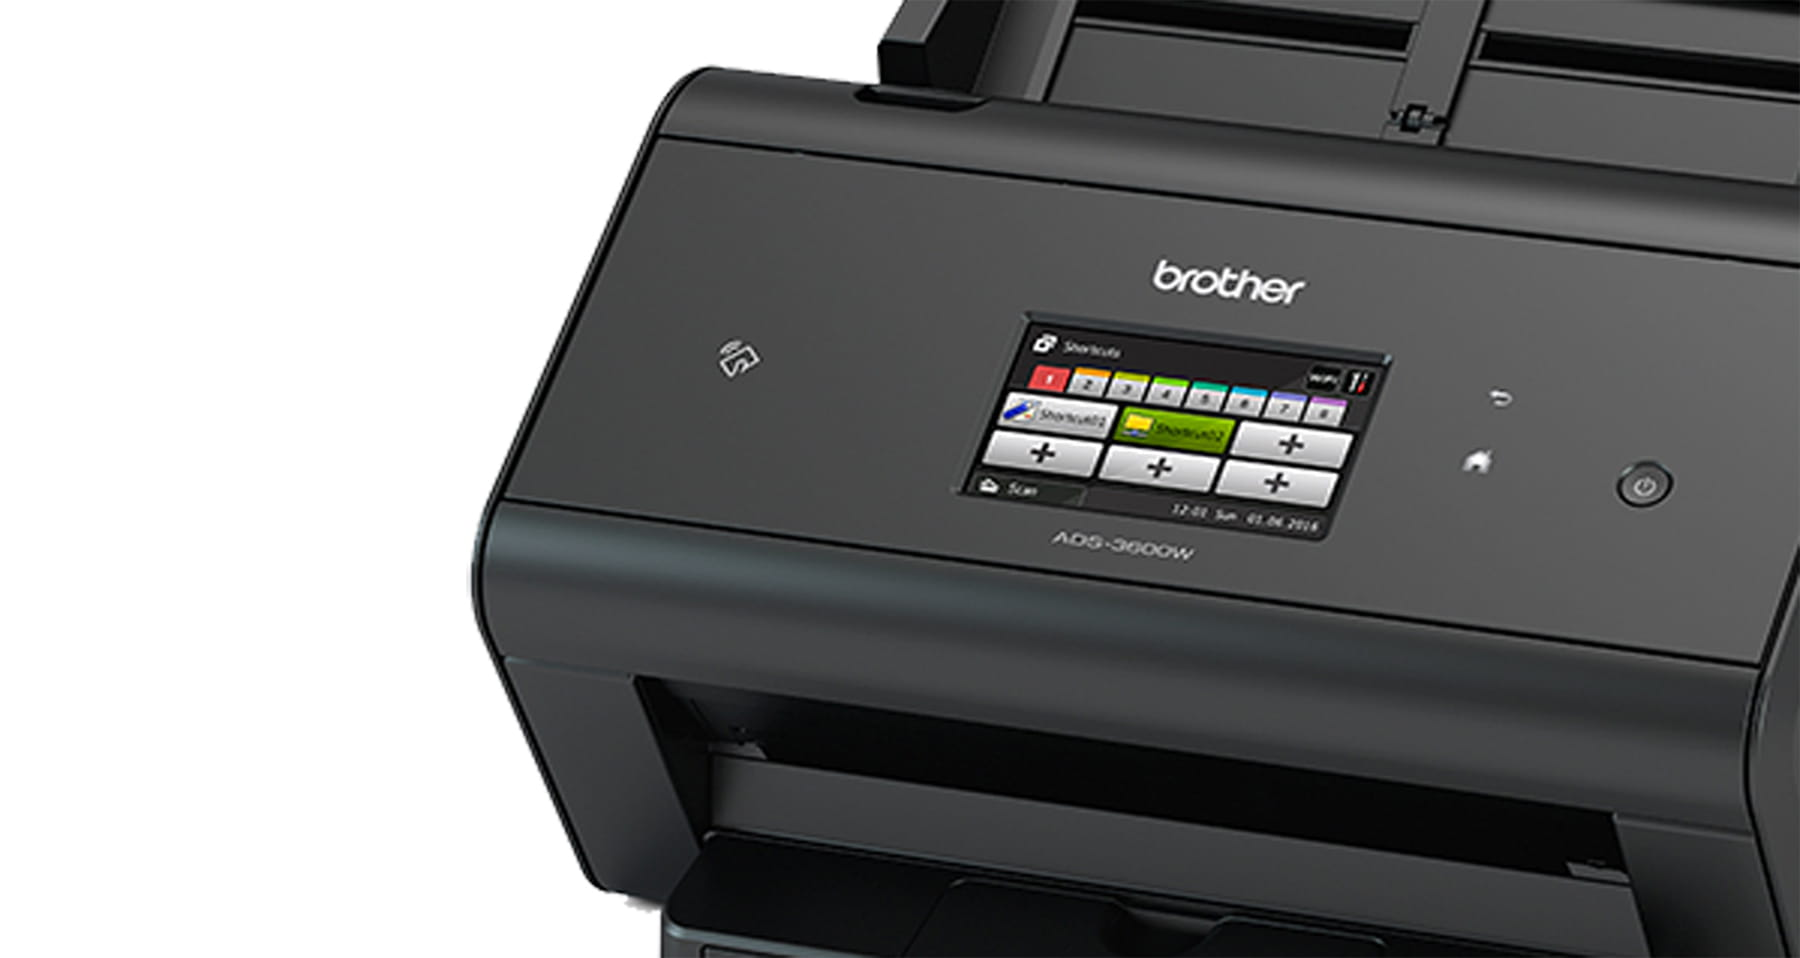 Brother scanner